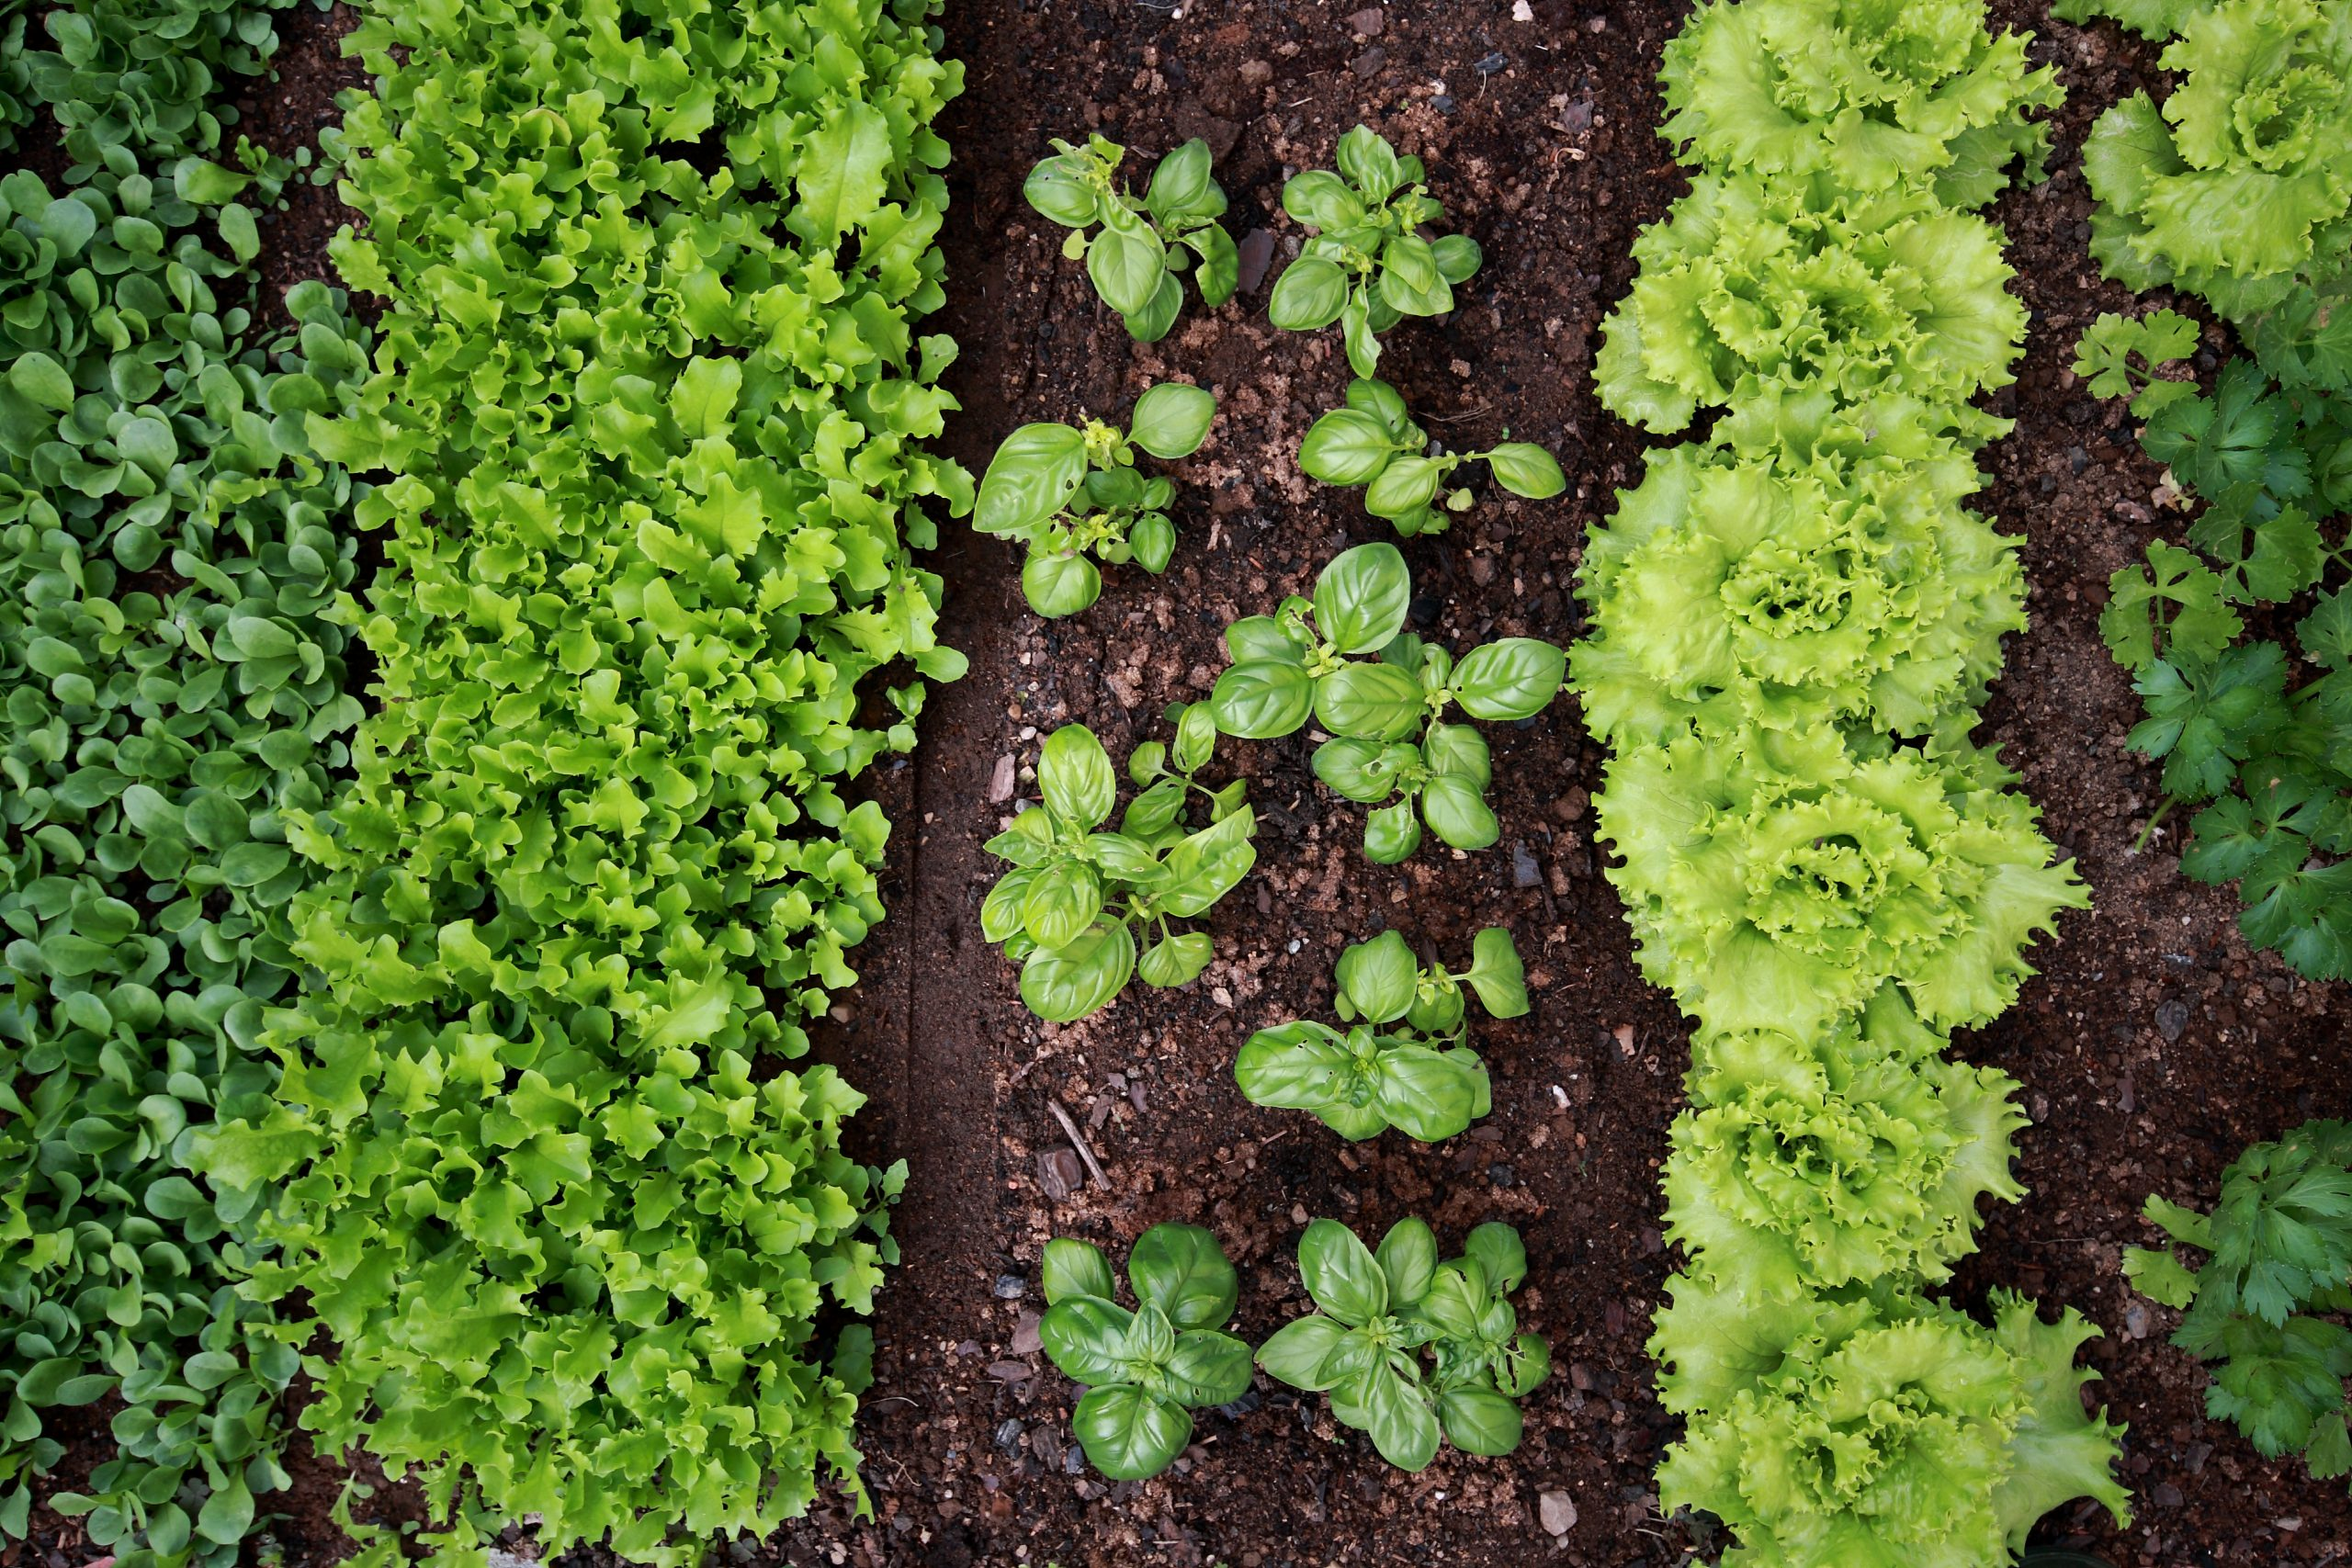 """New article on """"Agroecological principles and elements and their implications for transitioning to sustainable food systems. A review"""""""